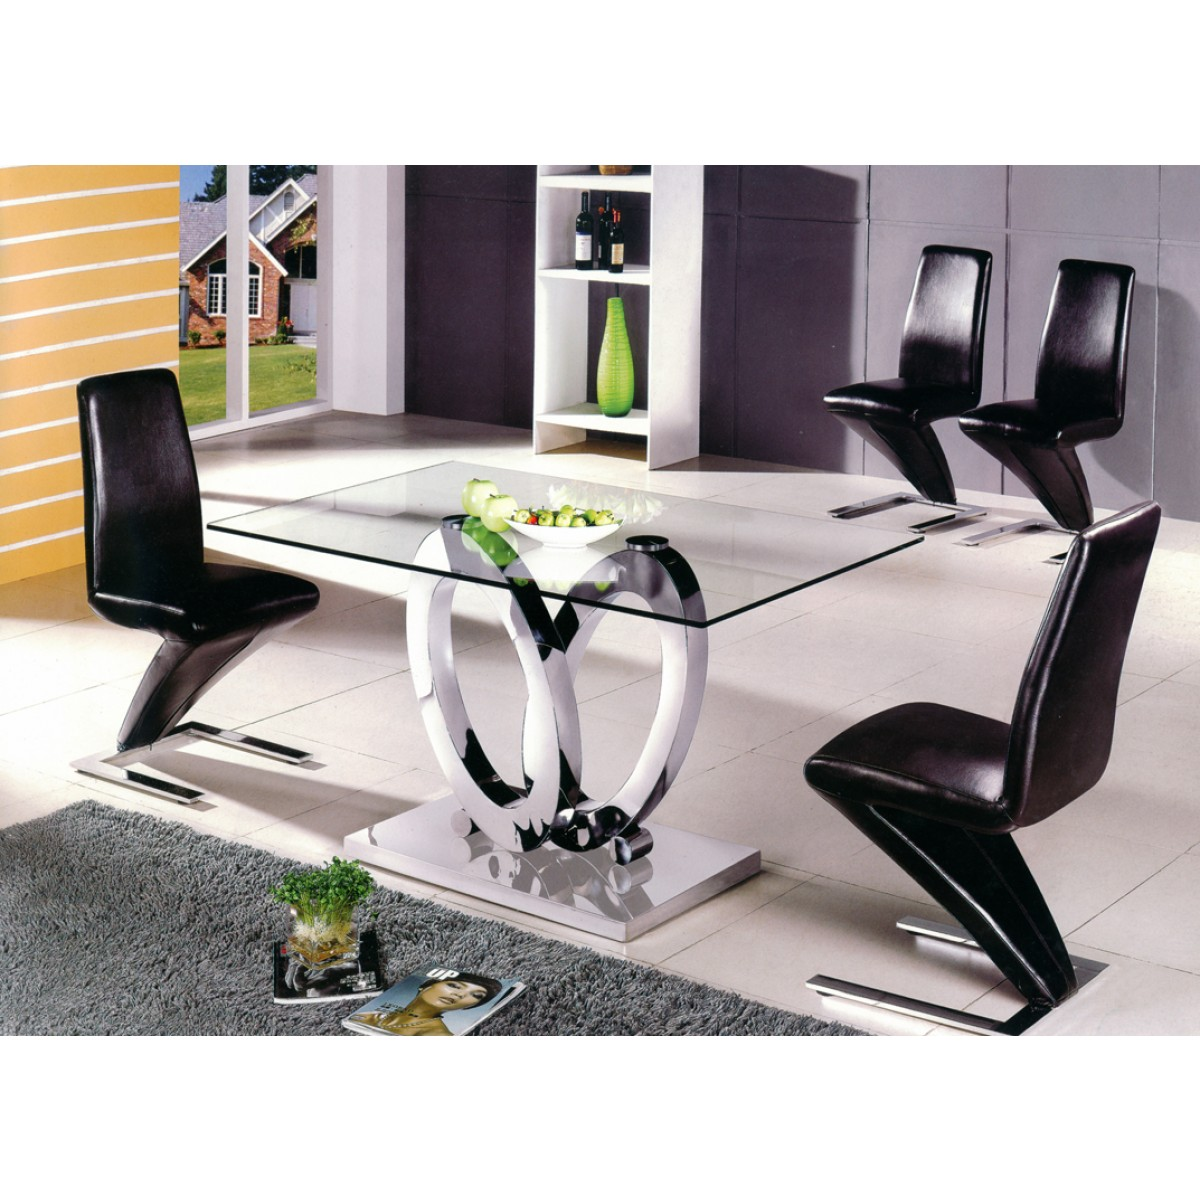 Table manger design ellipse taille au choix for Table de salle a manger style nordique